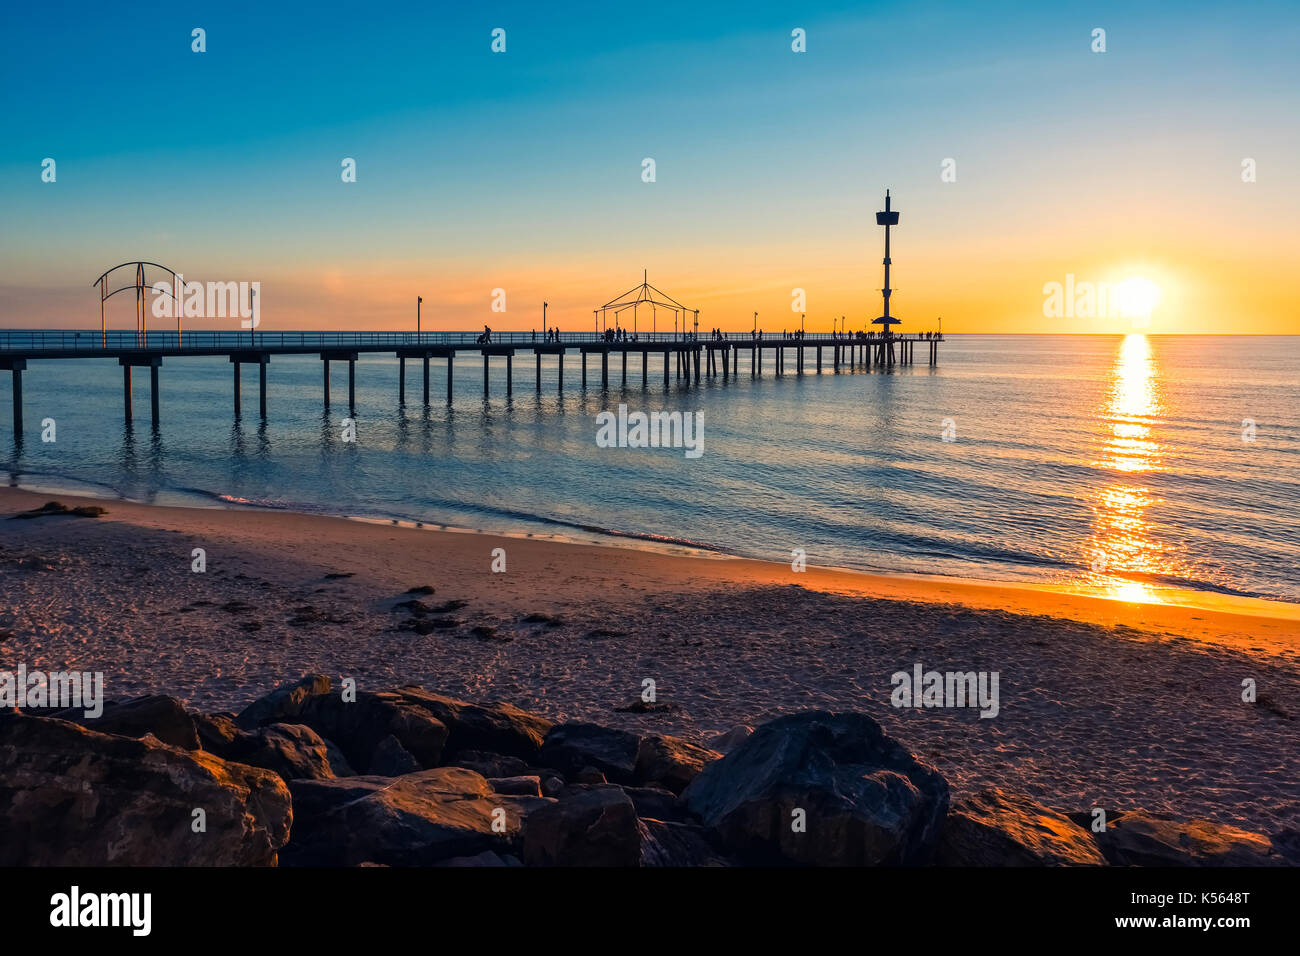 Brighton Beach jetty silhouette at sunset, South Australia - Stock Image